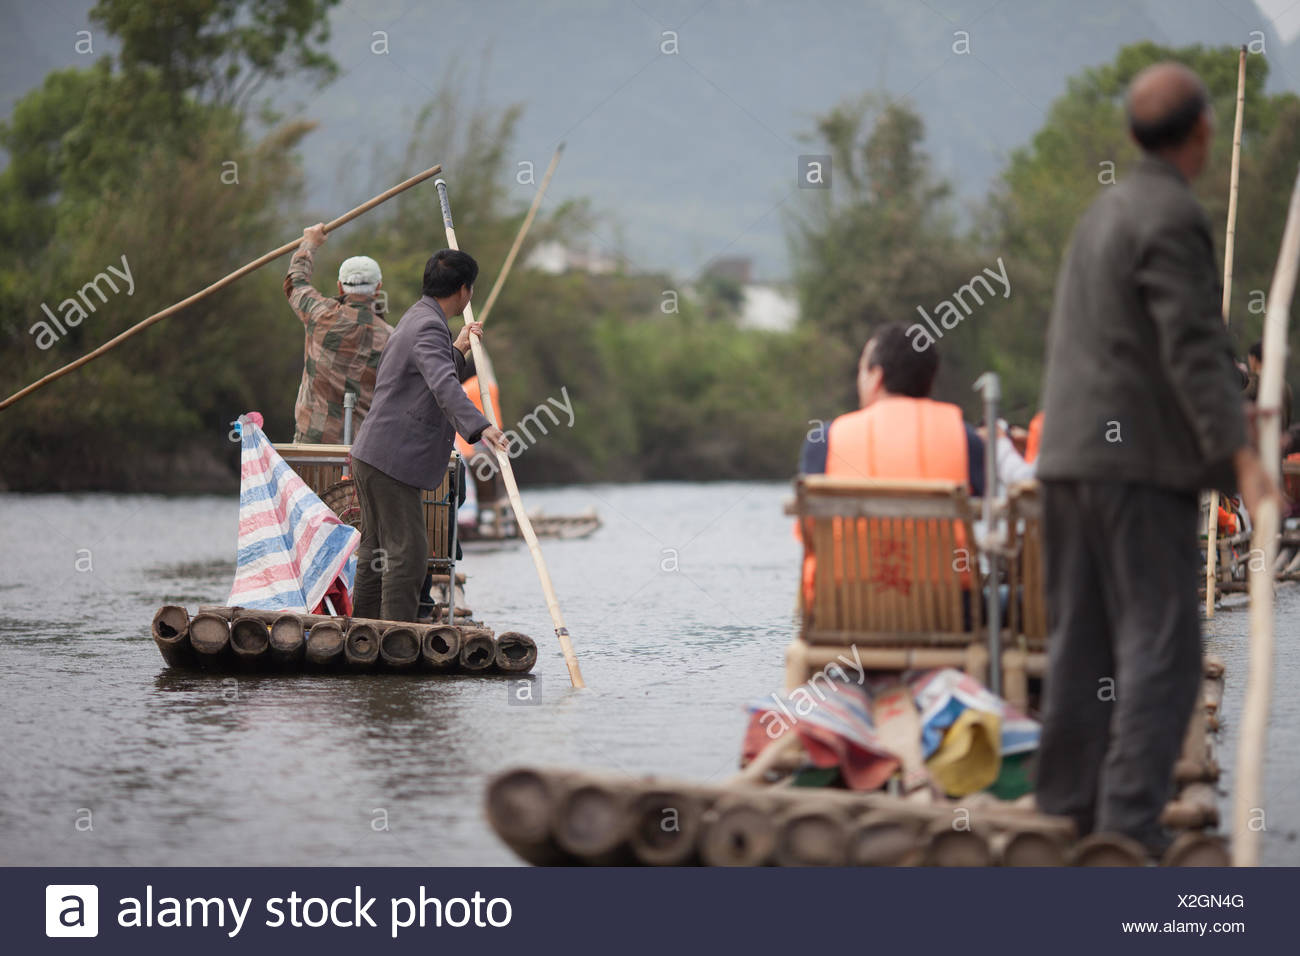 Boatmen Punting Wooden Rafts Along River - Stock Image